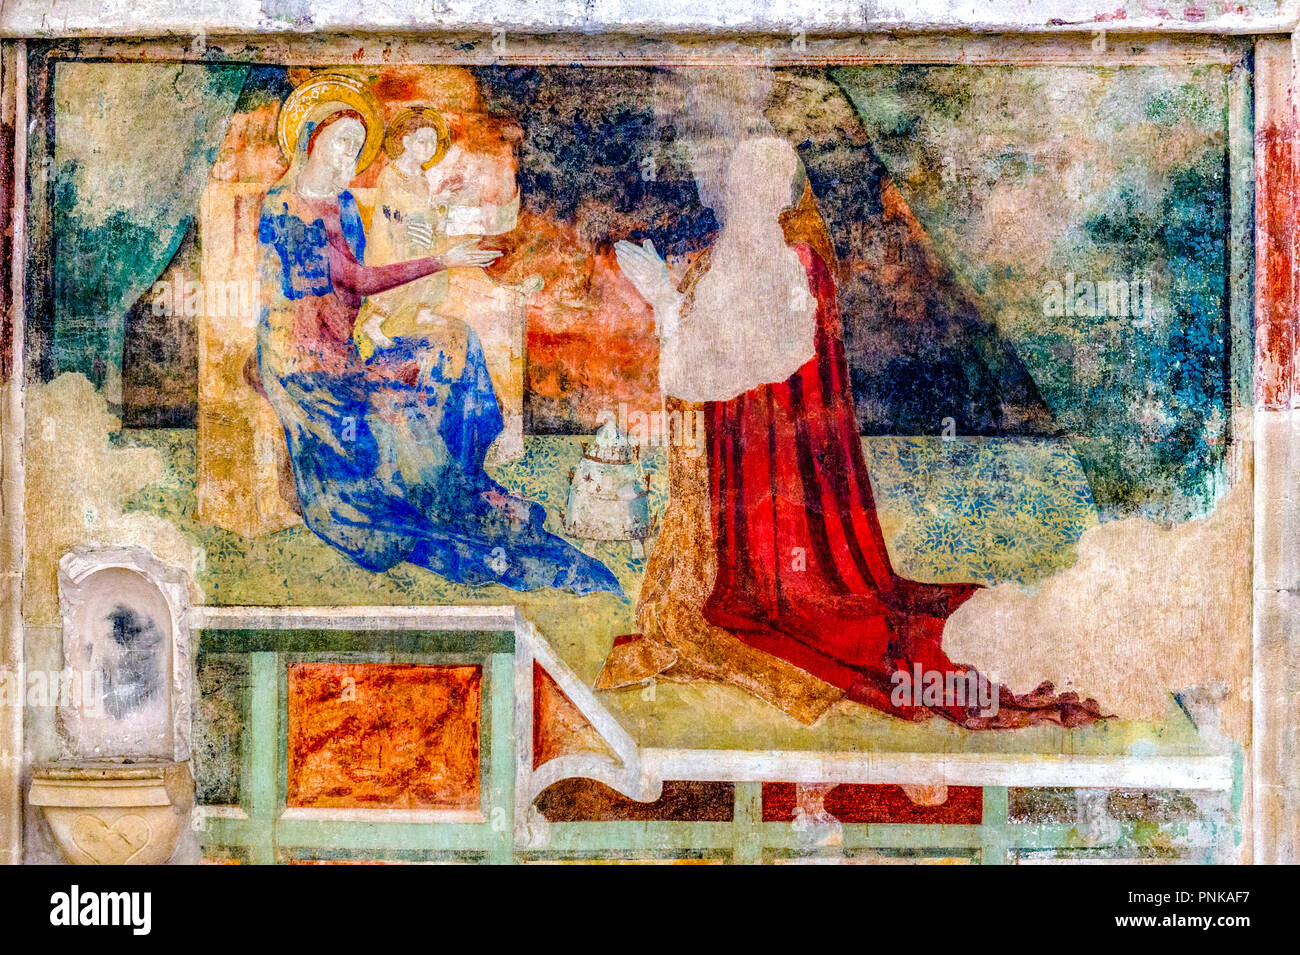 France. Gard (30). Villeneuve-Les-Avignon. Chartreuse Notre-Dame-du-Val-de-Bénédiction. The chapel of the frescoes. Innocent VI adoring the Virgin - Stock Image